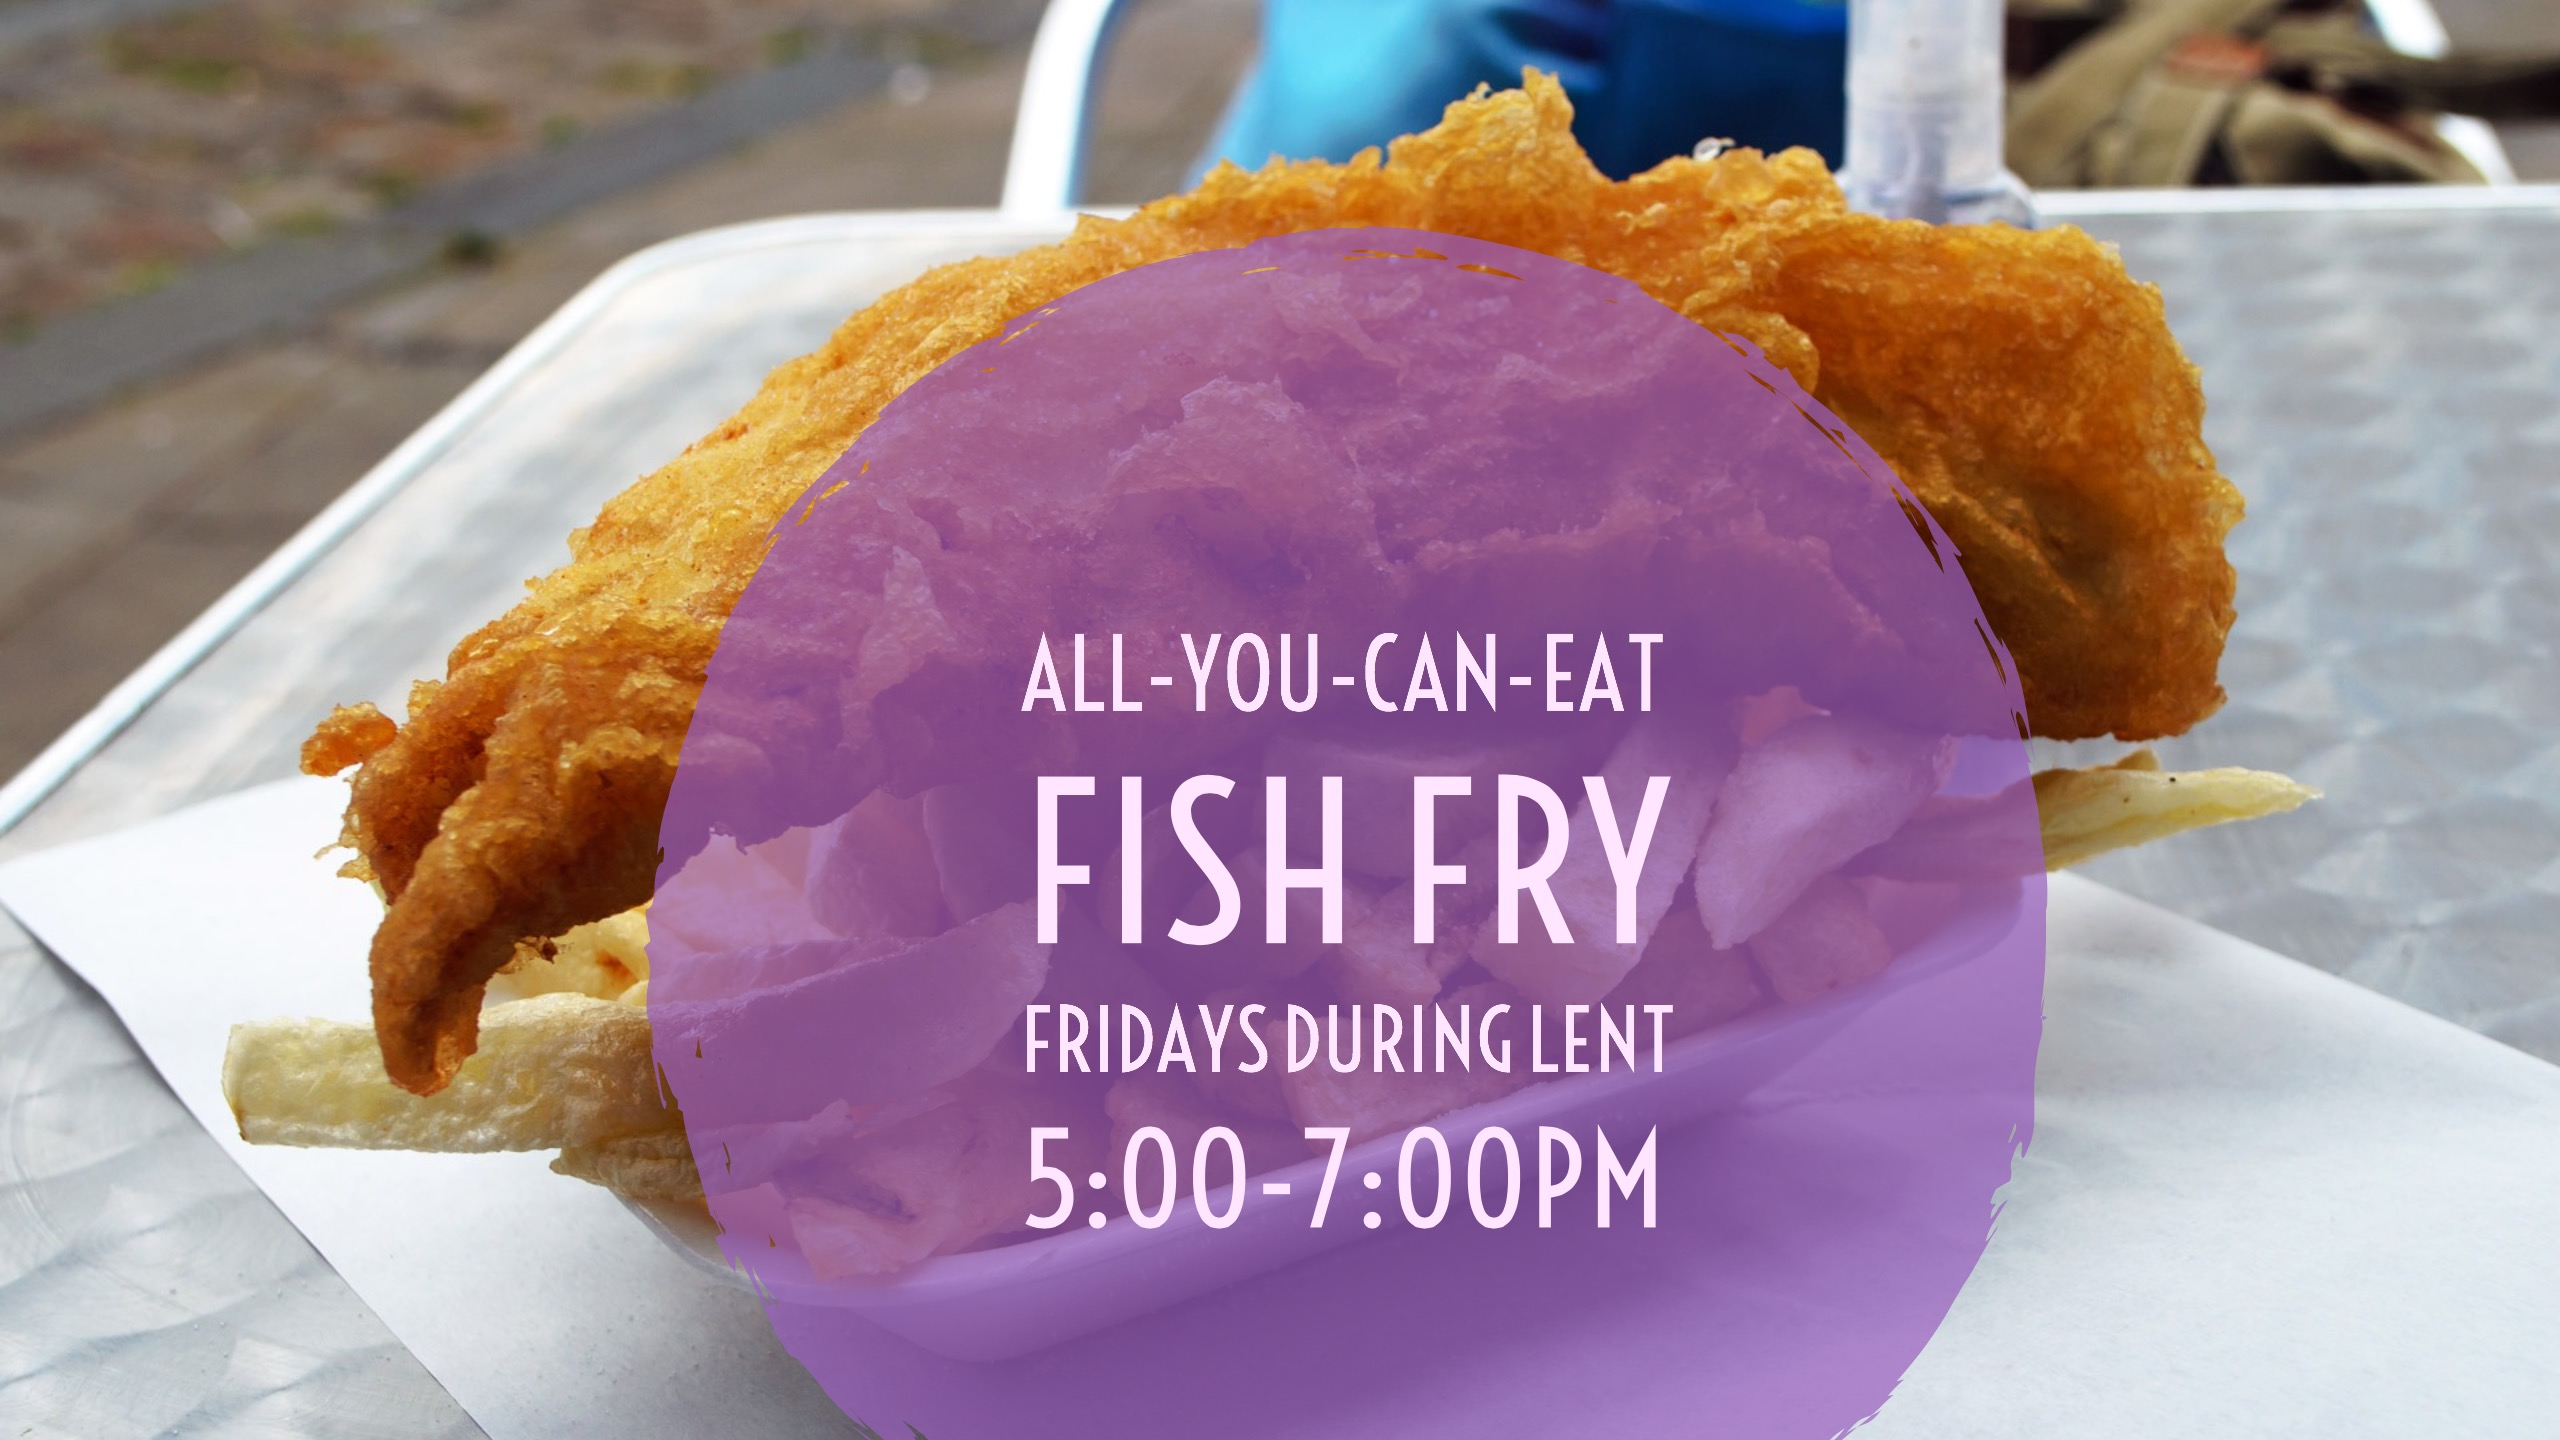 Fish Fry on Fridays During Lent